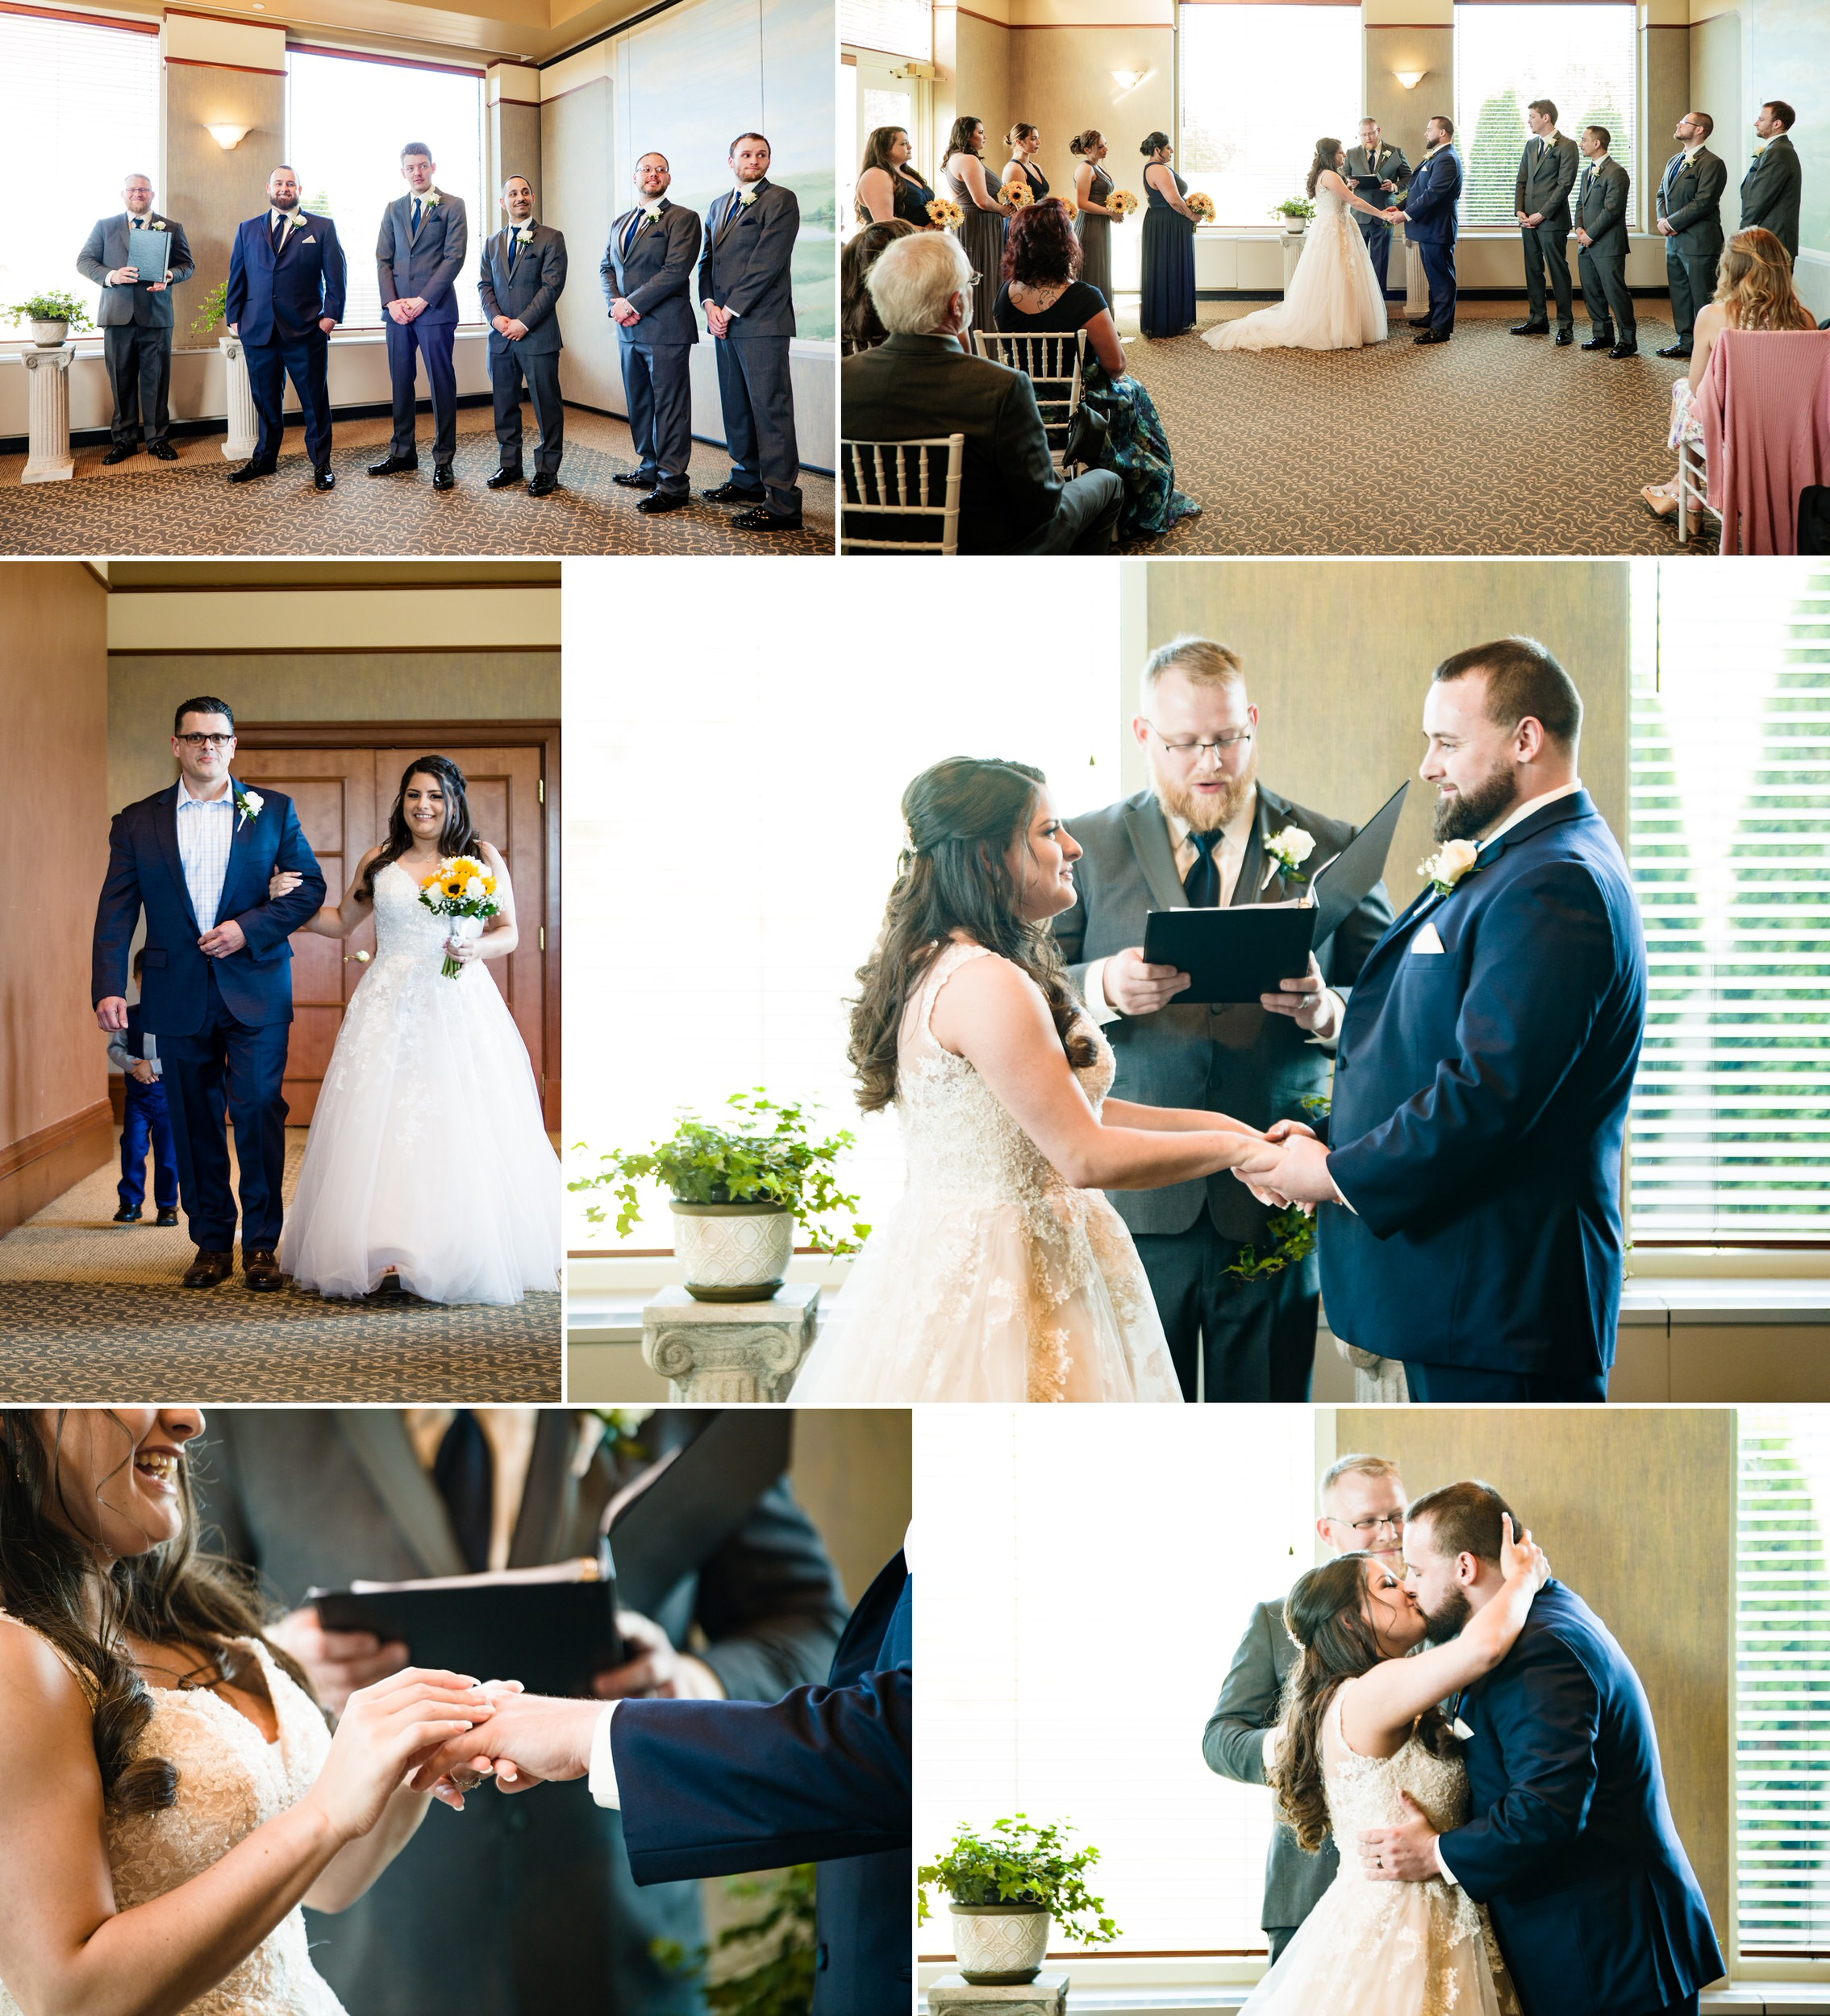 Spring wedding ceremony inside the Lake Room at Sand Creek Country Club.